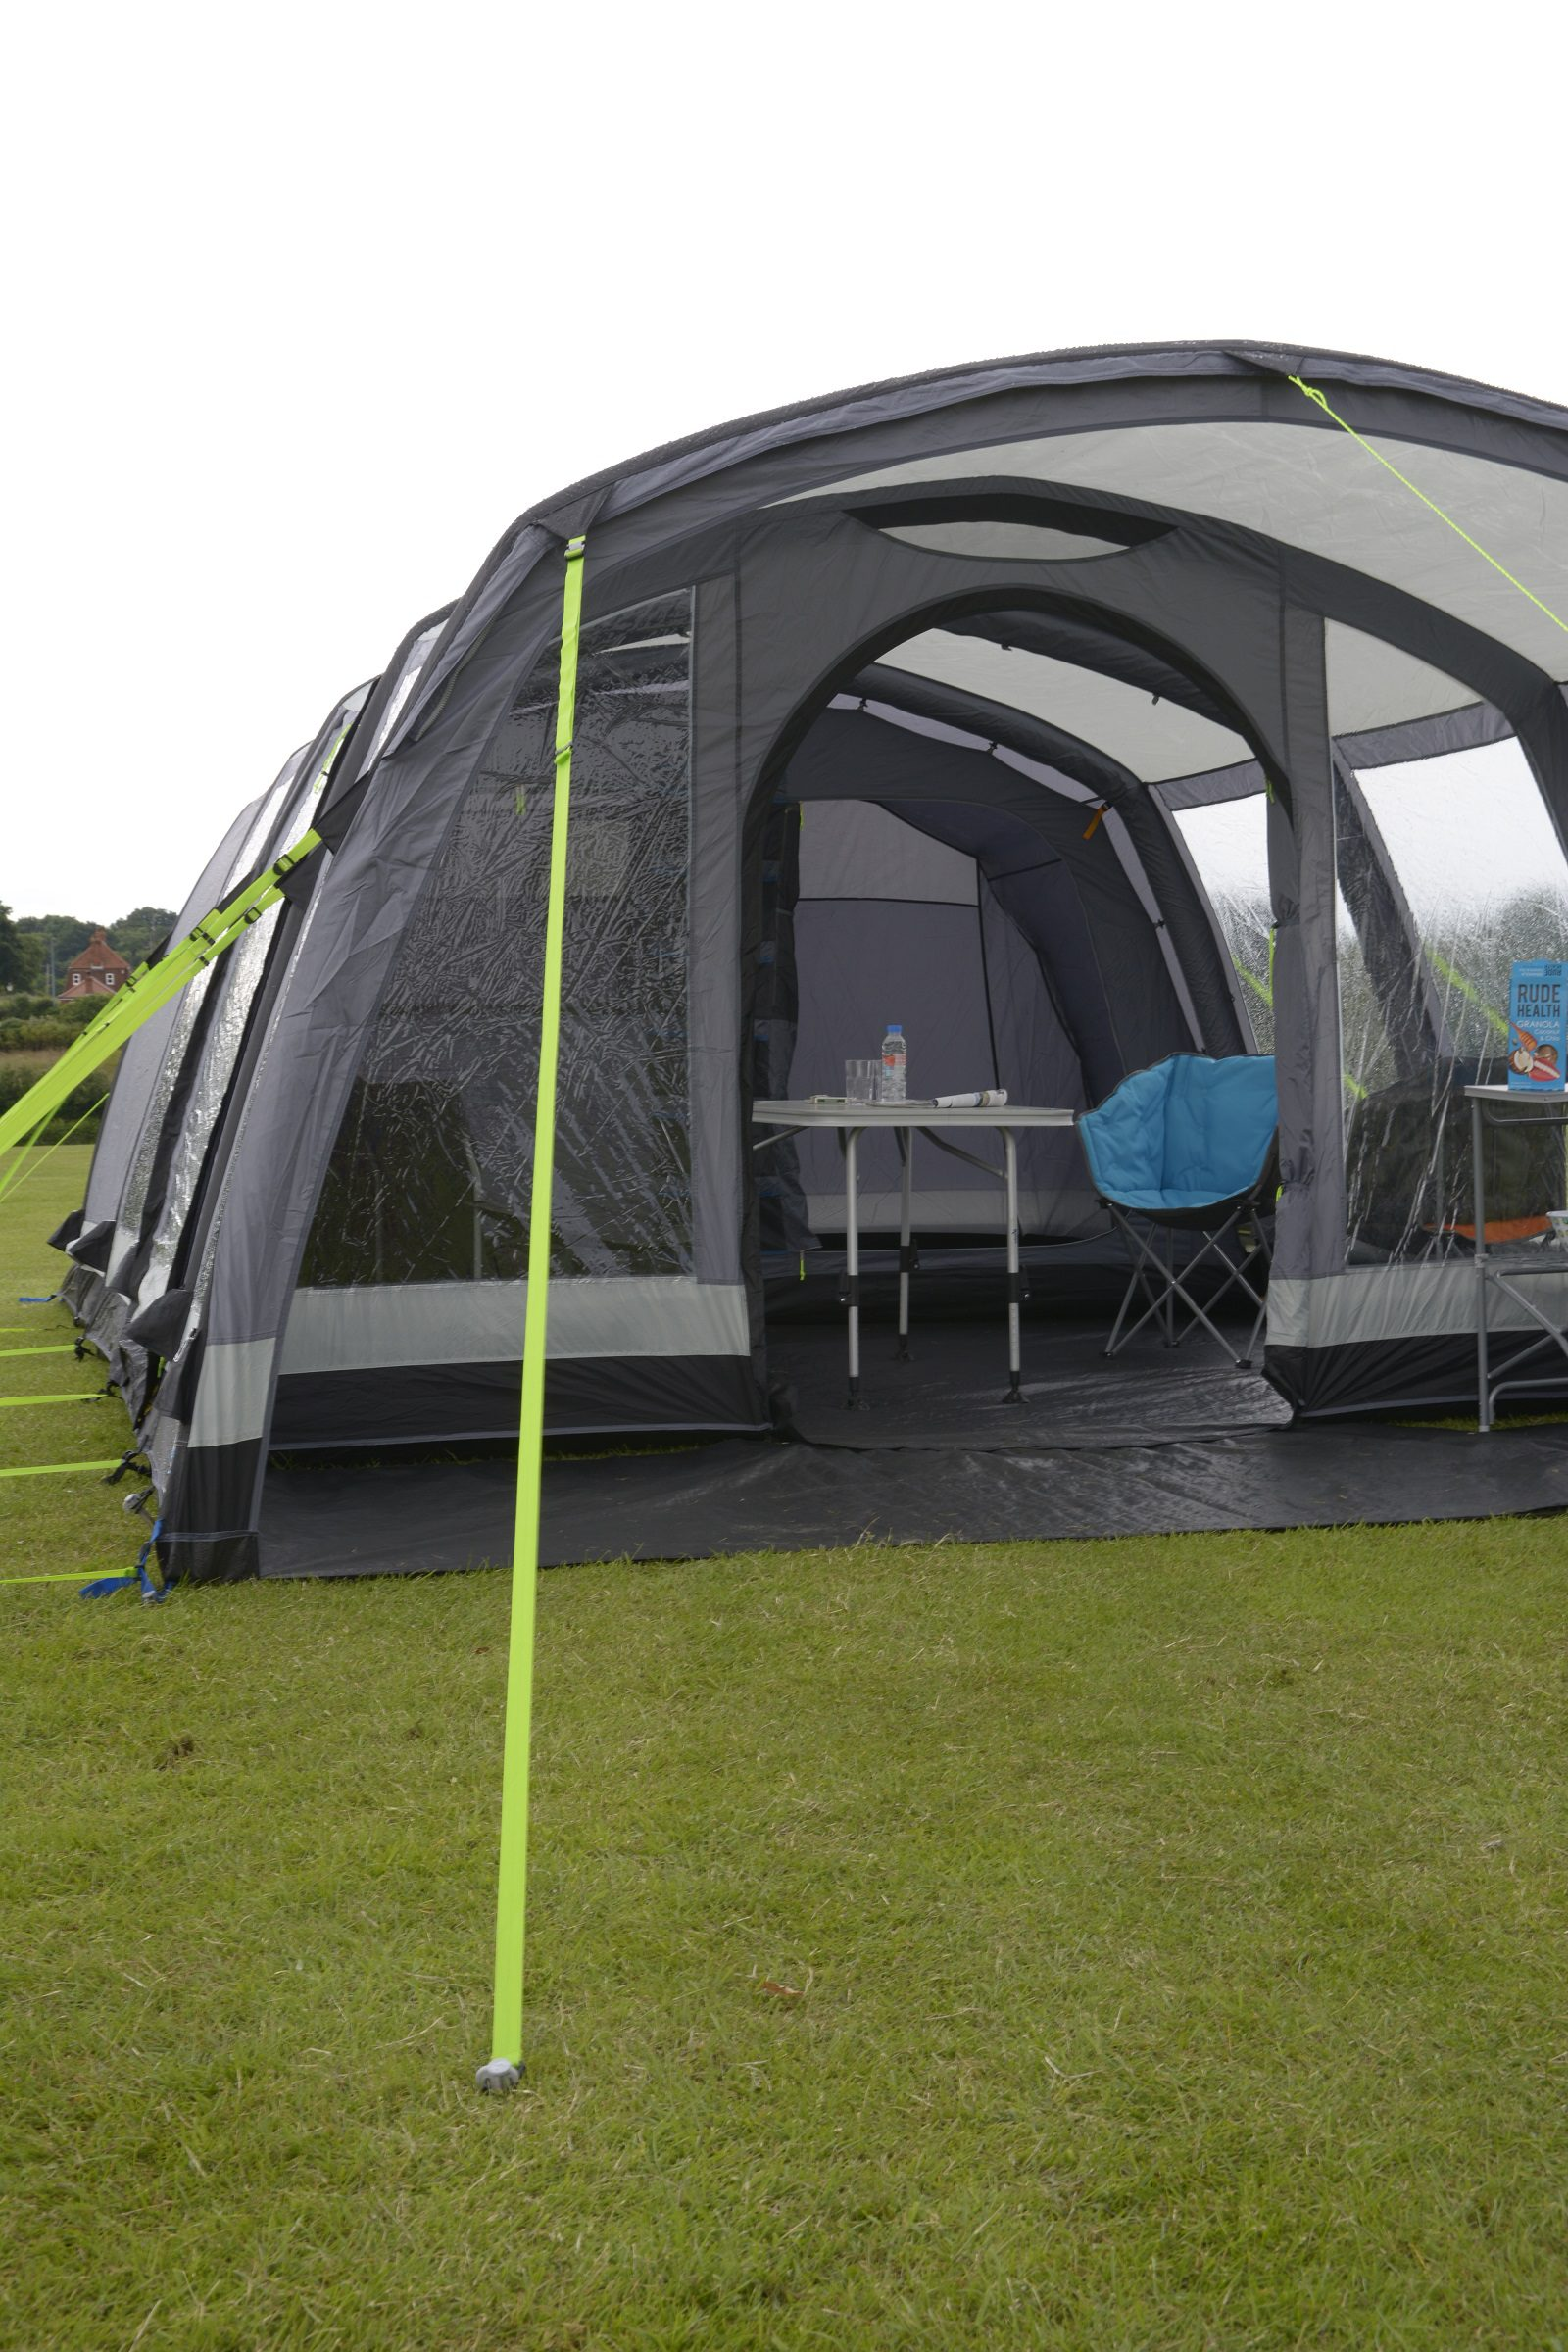 Hayling 6 air pro side of tent